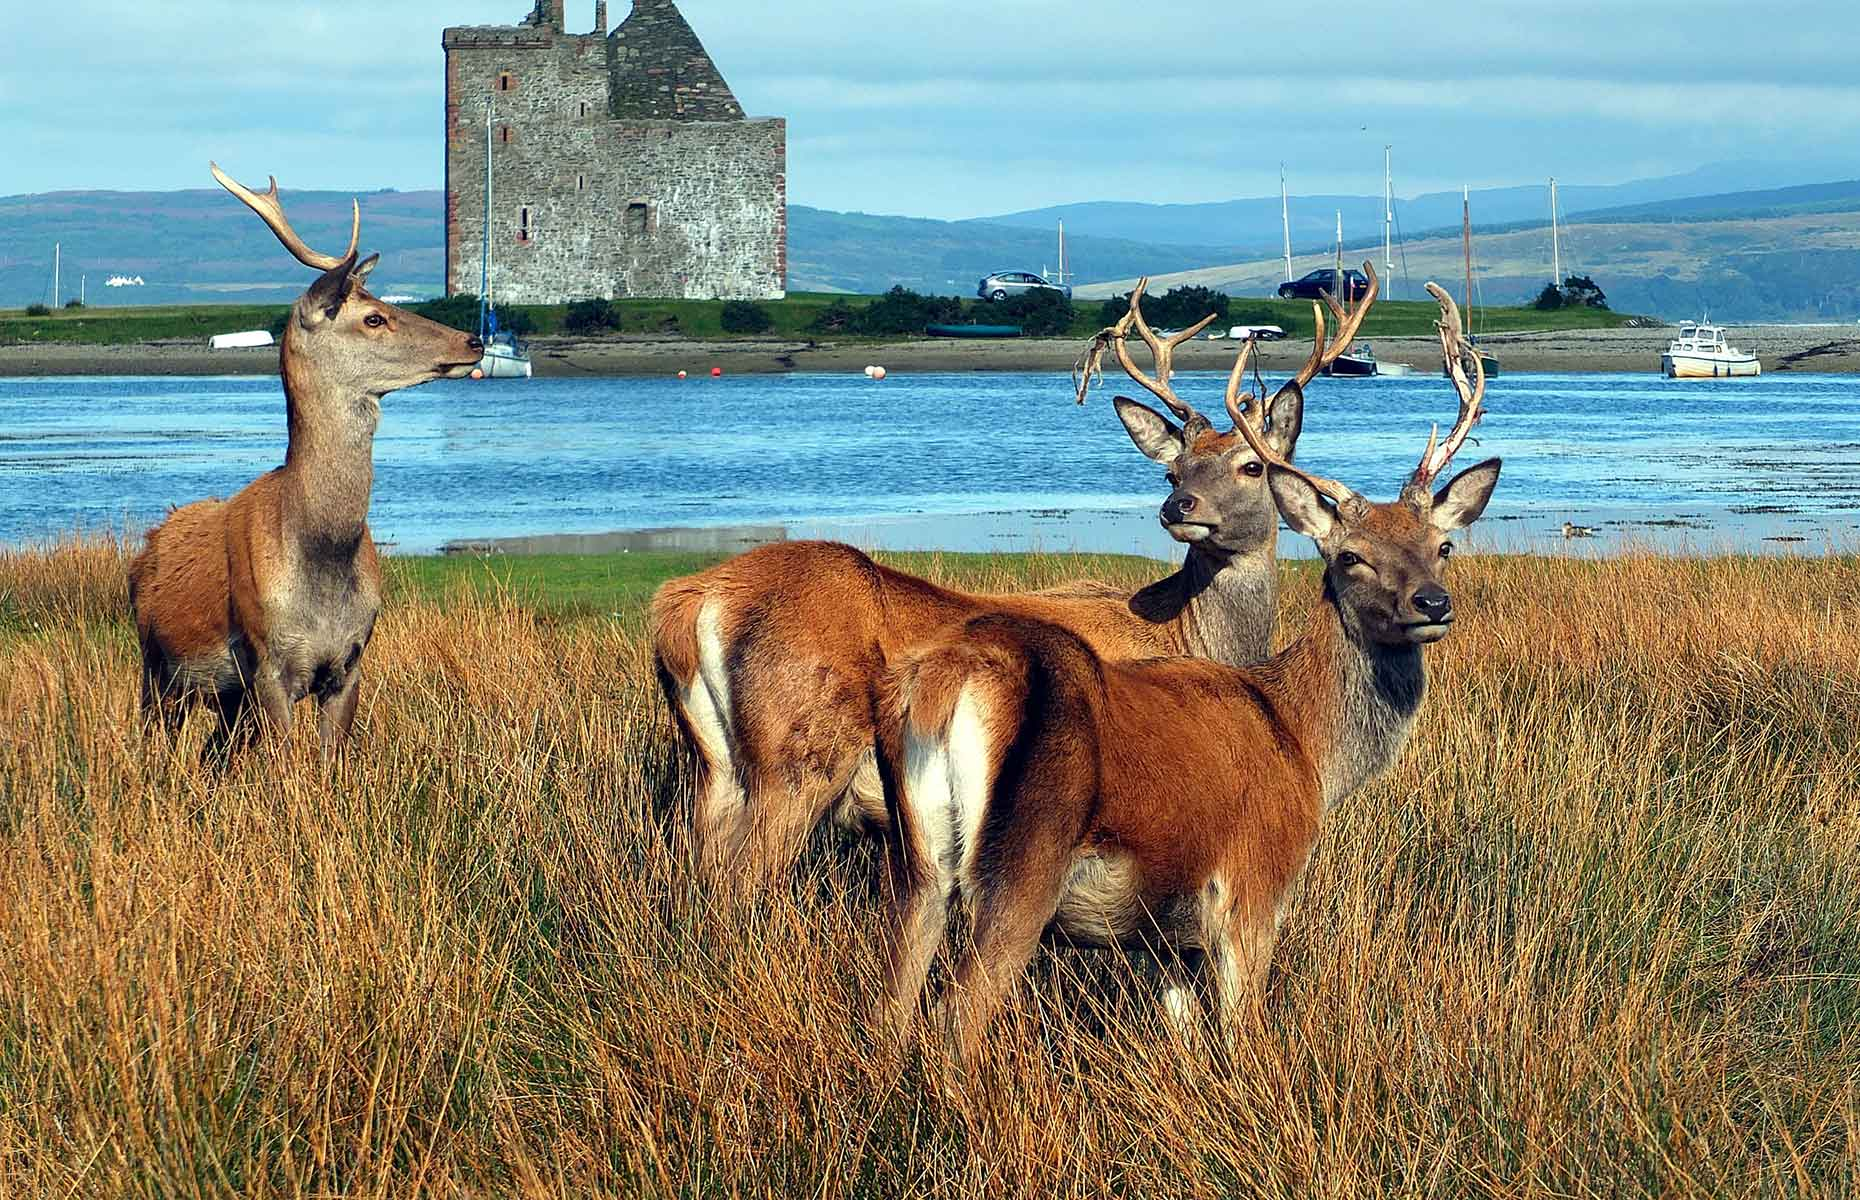 Deer on the Isle of Arran, Scotland (Image: Allan Napier/Shutterstock)